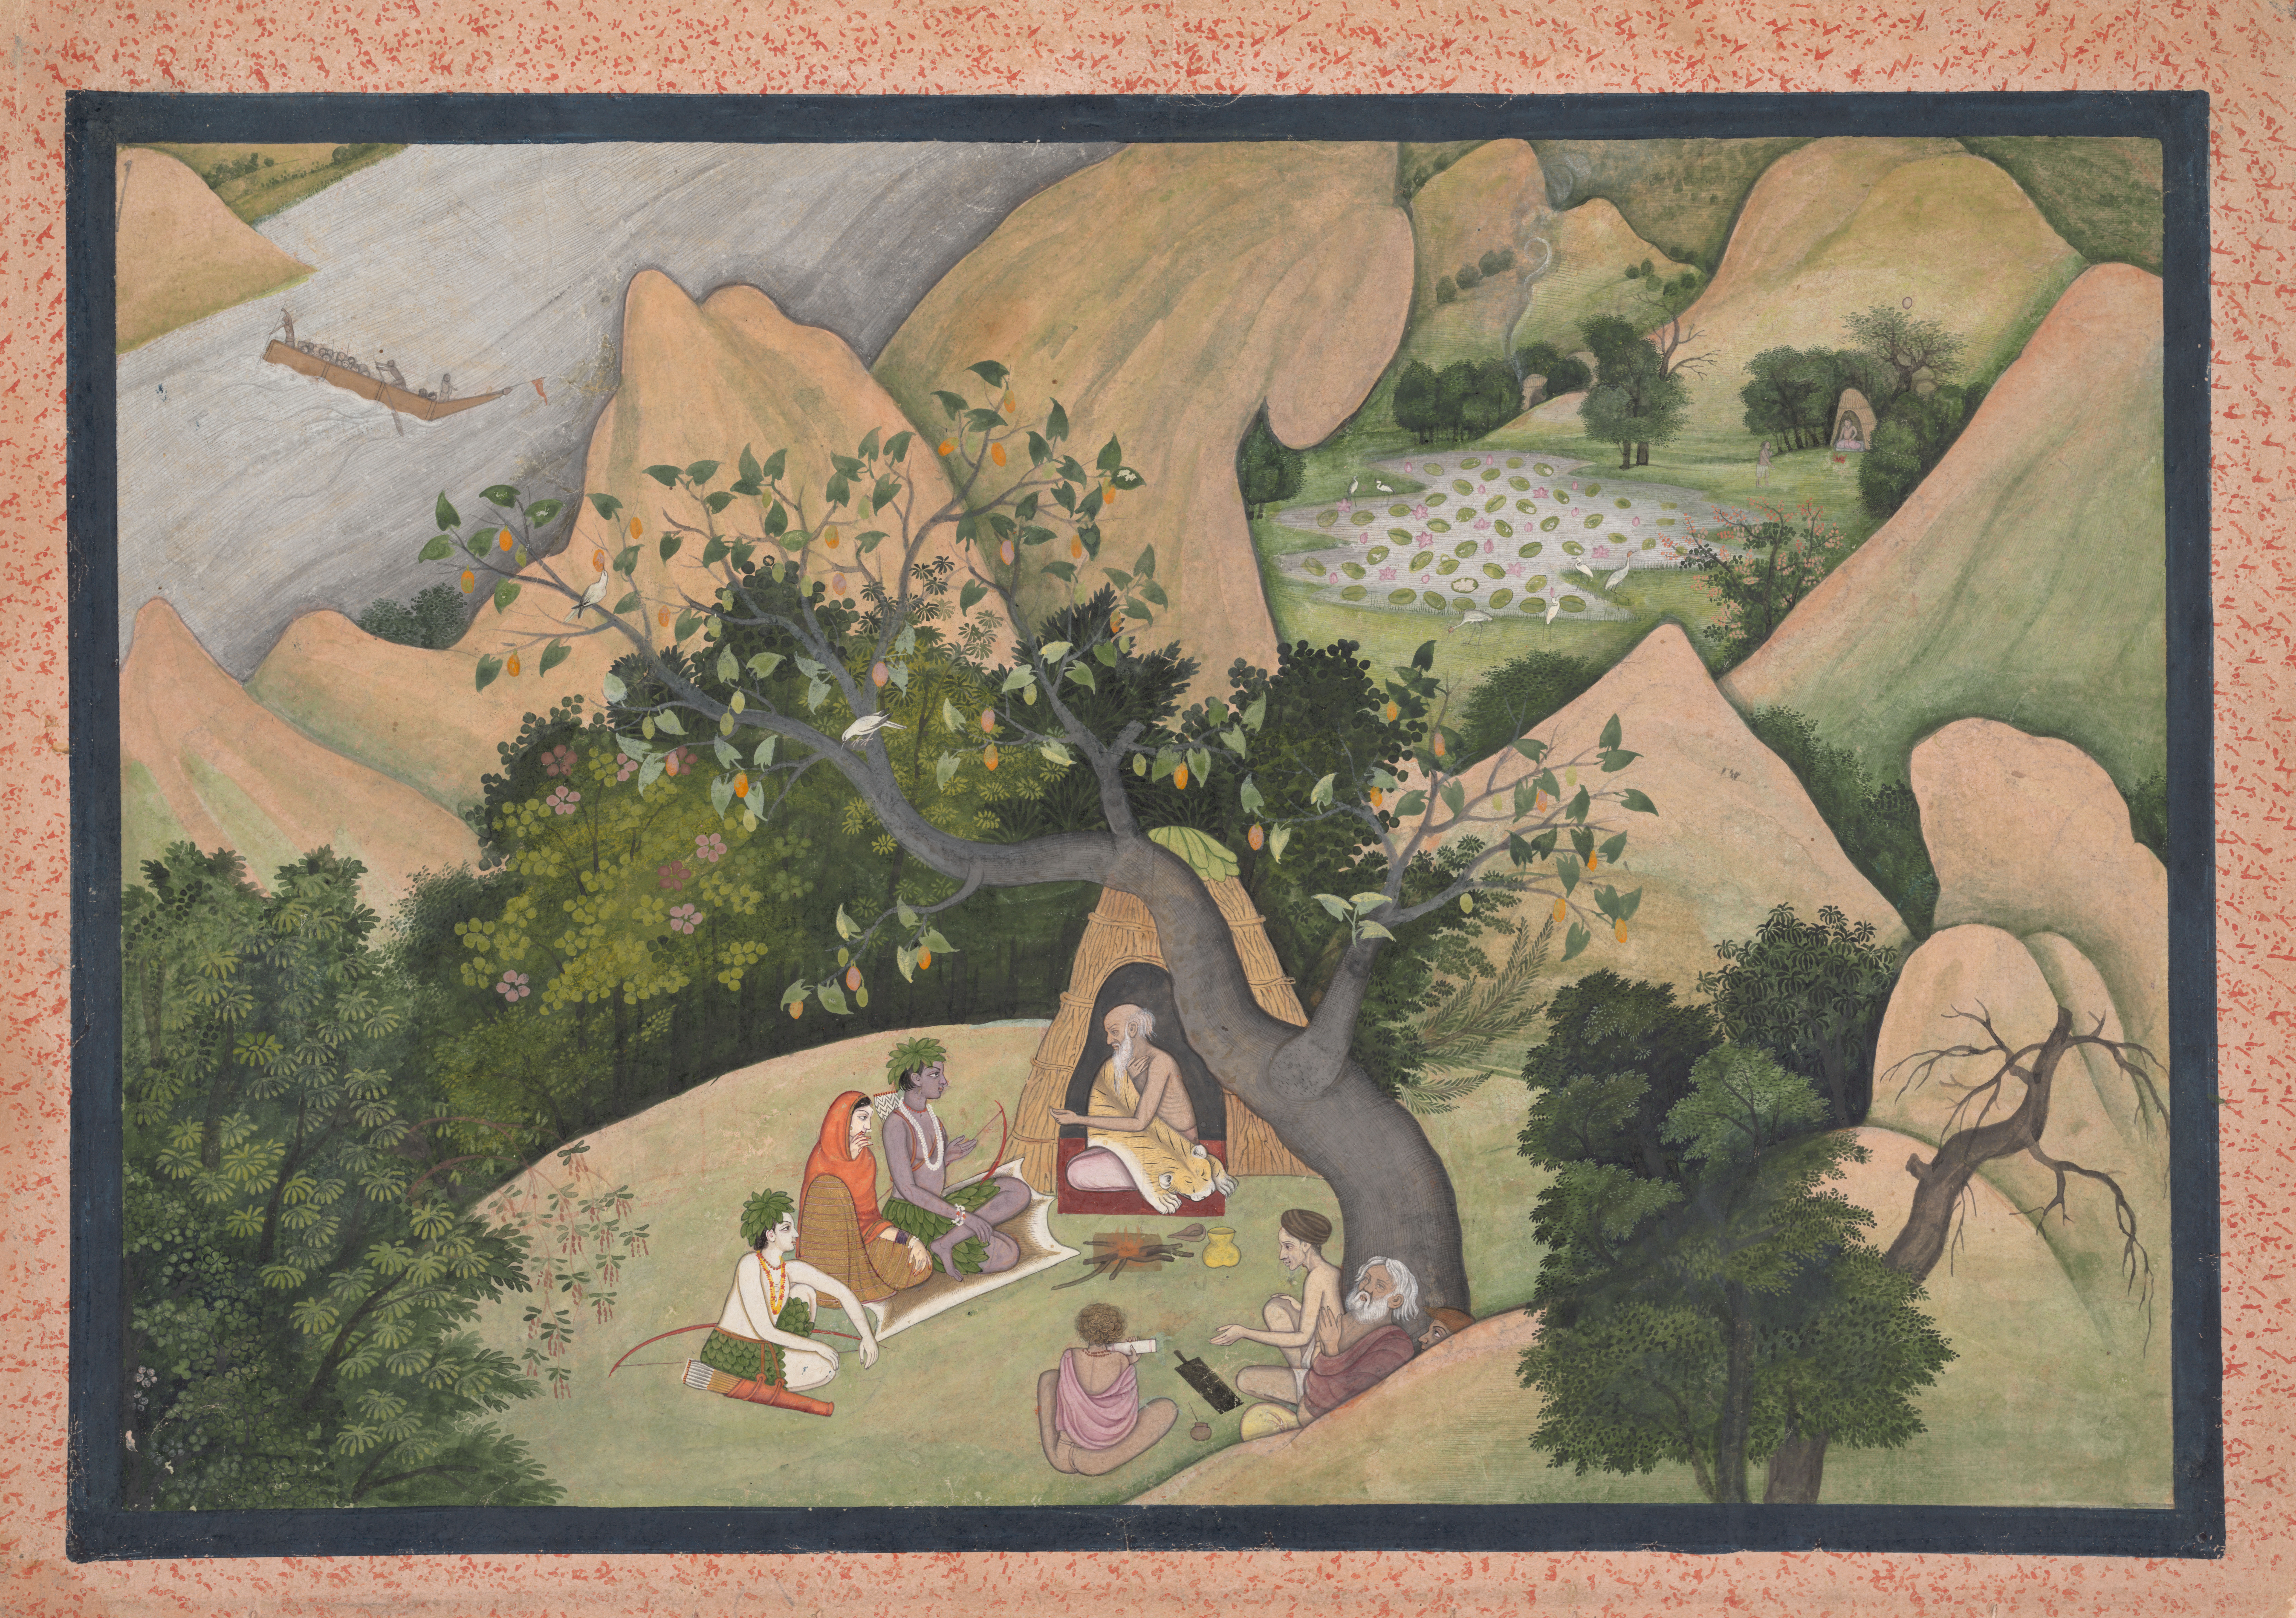 An opaque watercolour and ink on paper from the Kangra valley in Himachal Pradesh, ca. 1780. The painting is called Rama, Sita, and Lakshmana at the Hermitage of Bharadvaja